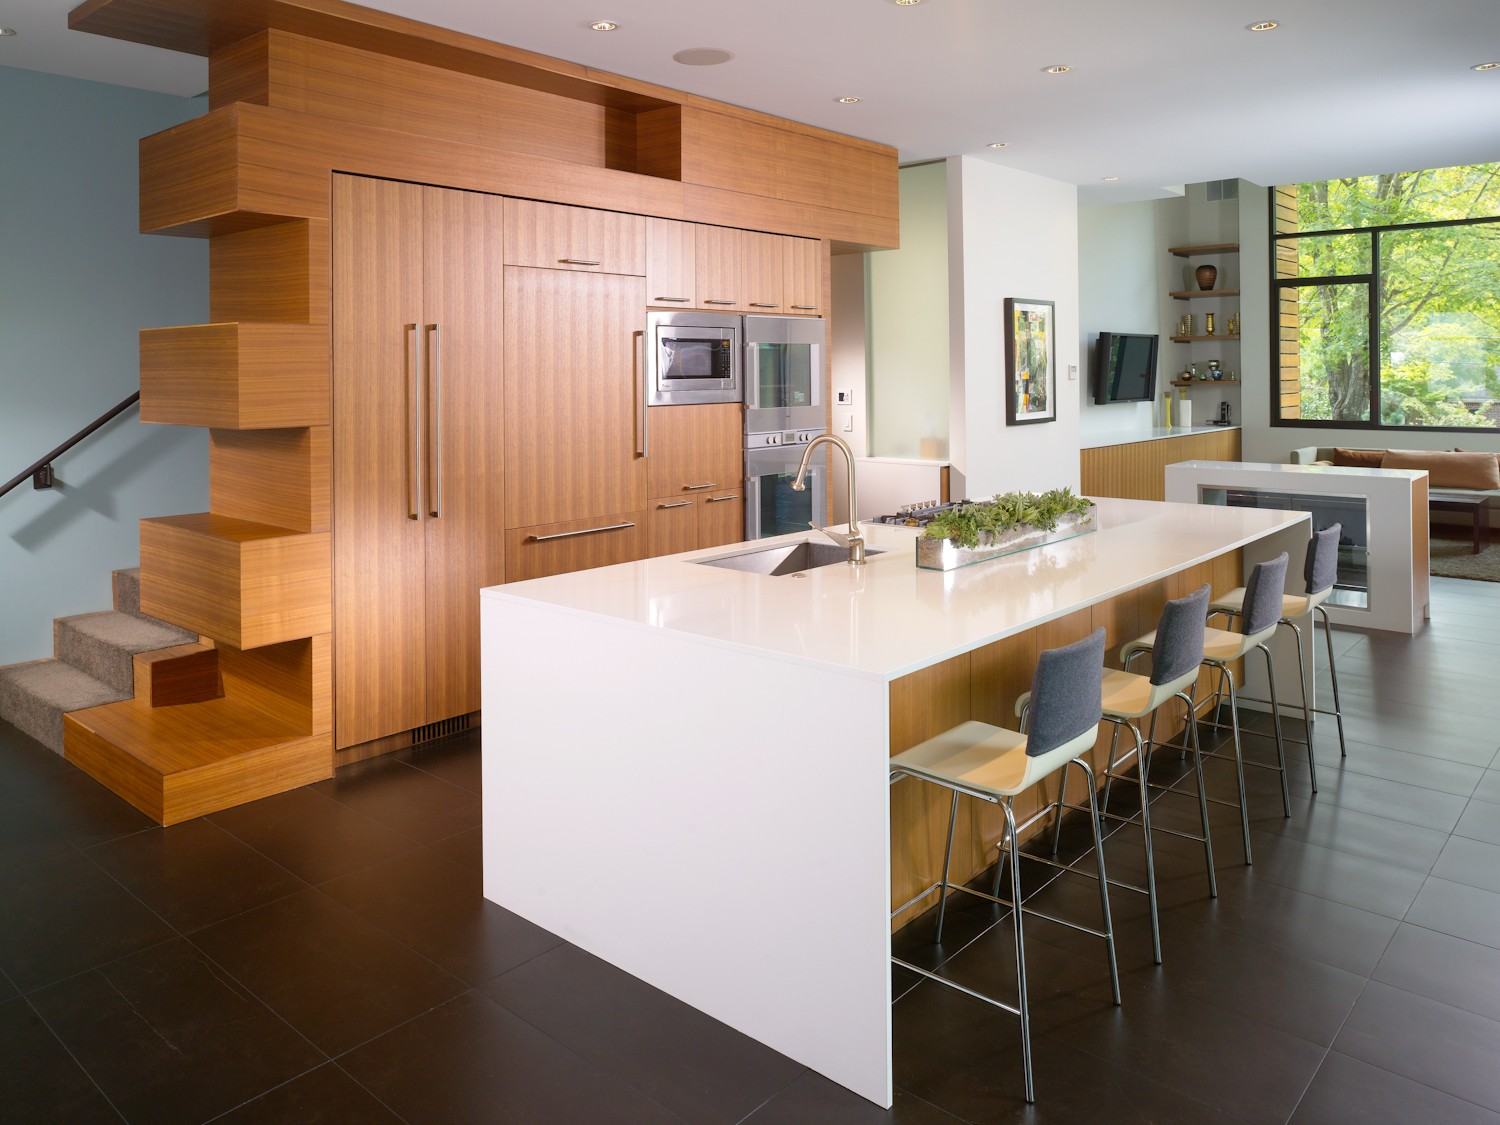 11 Gorgeous Kitchens For People Who Love To Cook Sheknows